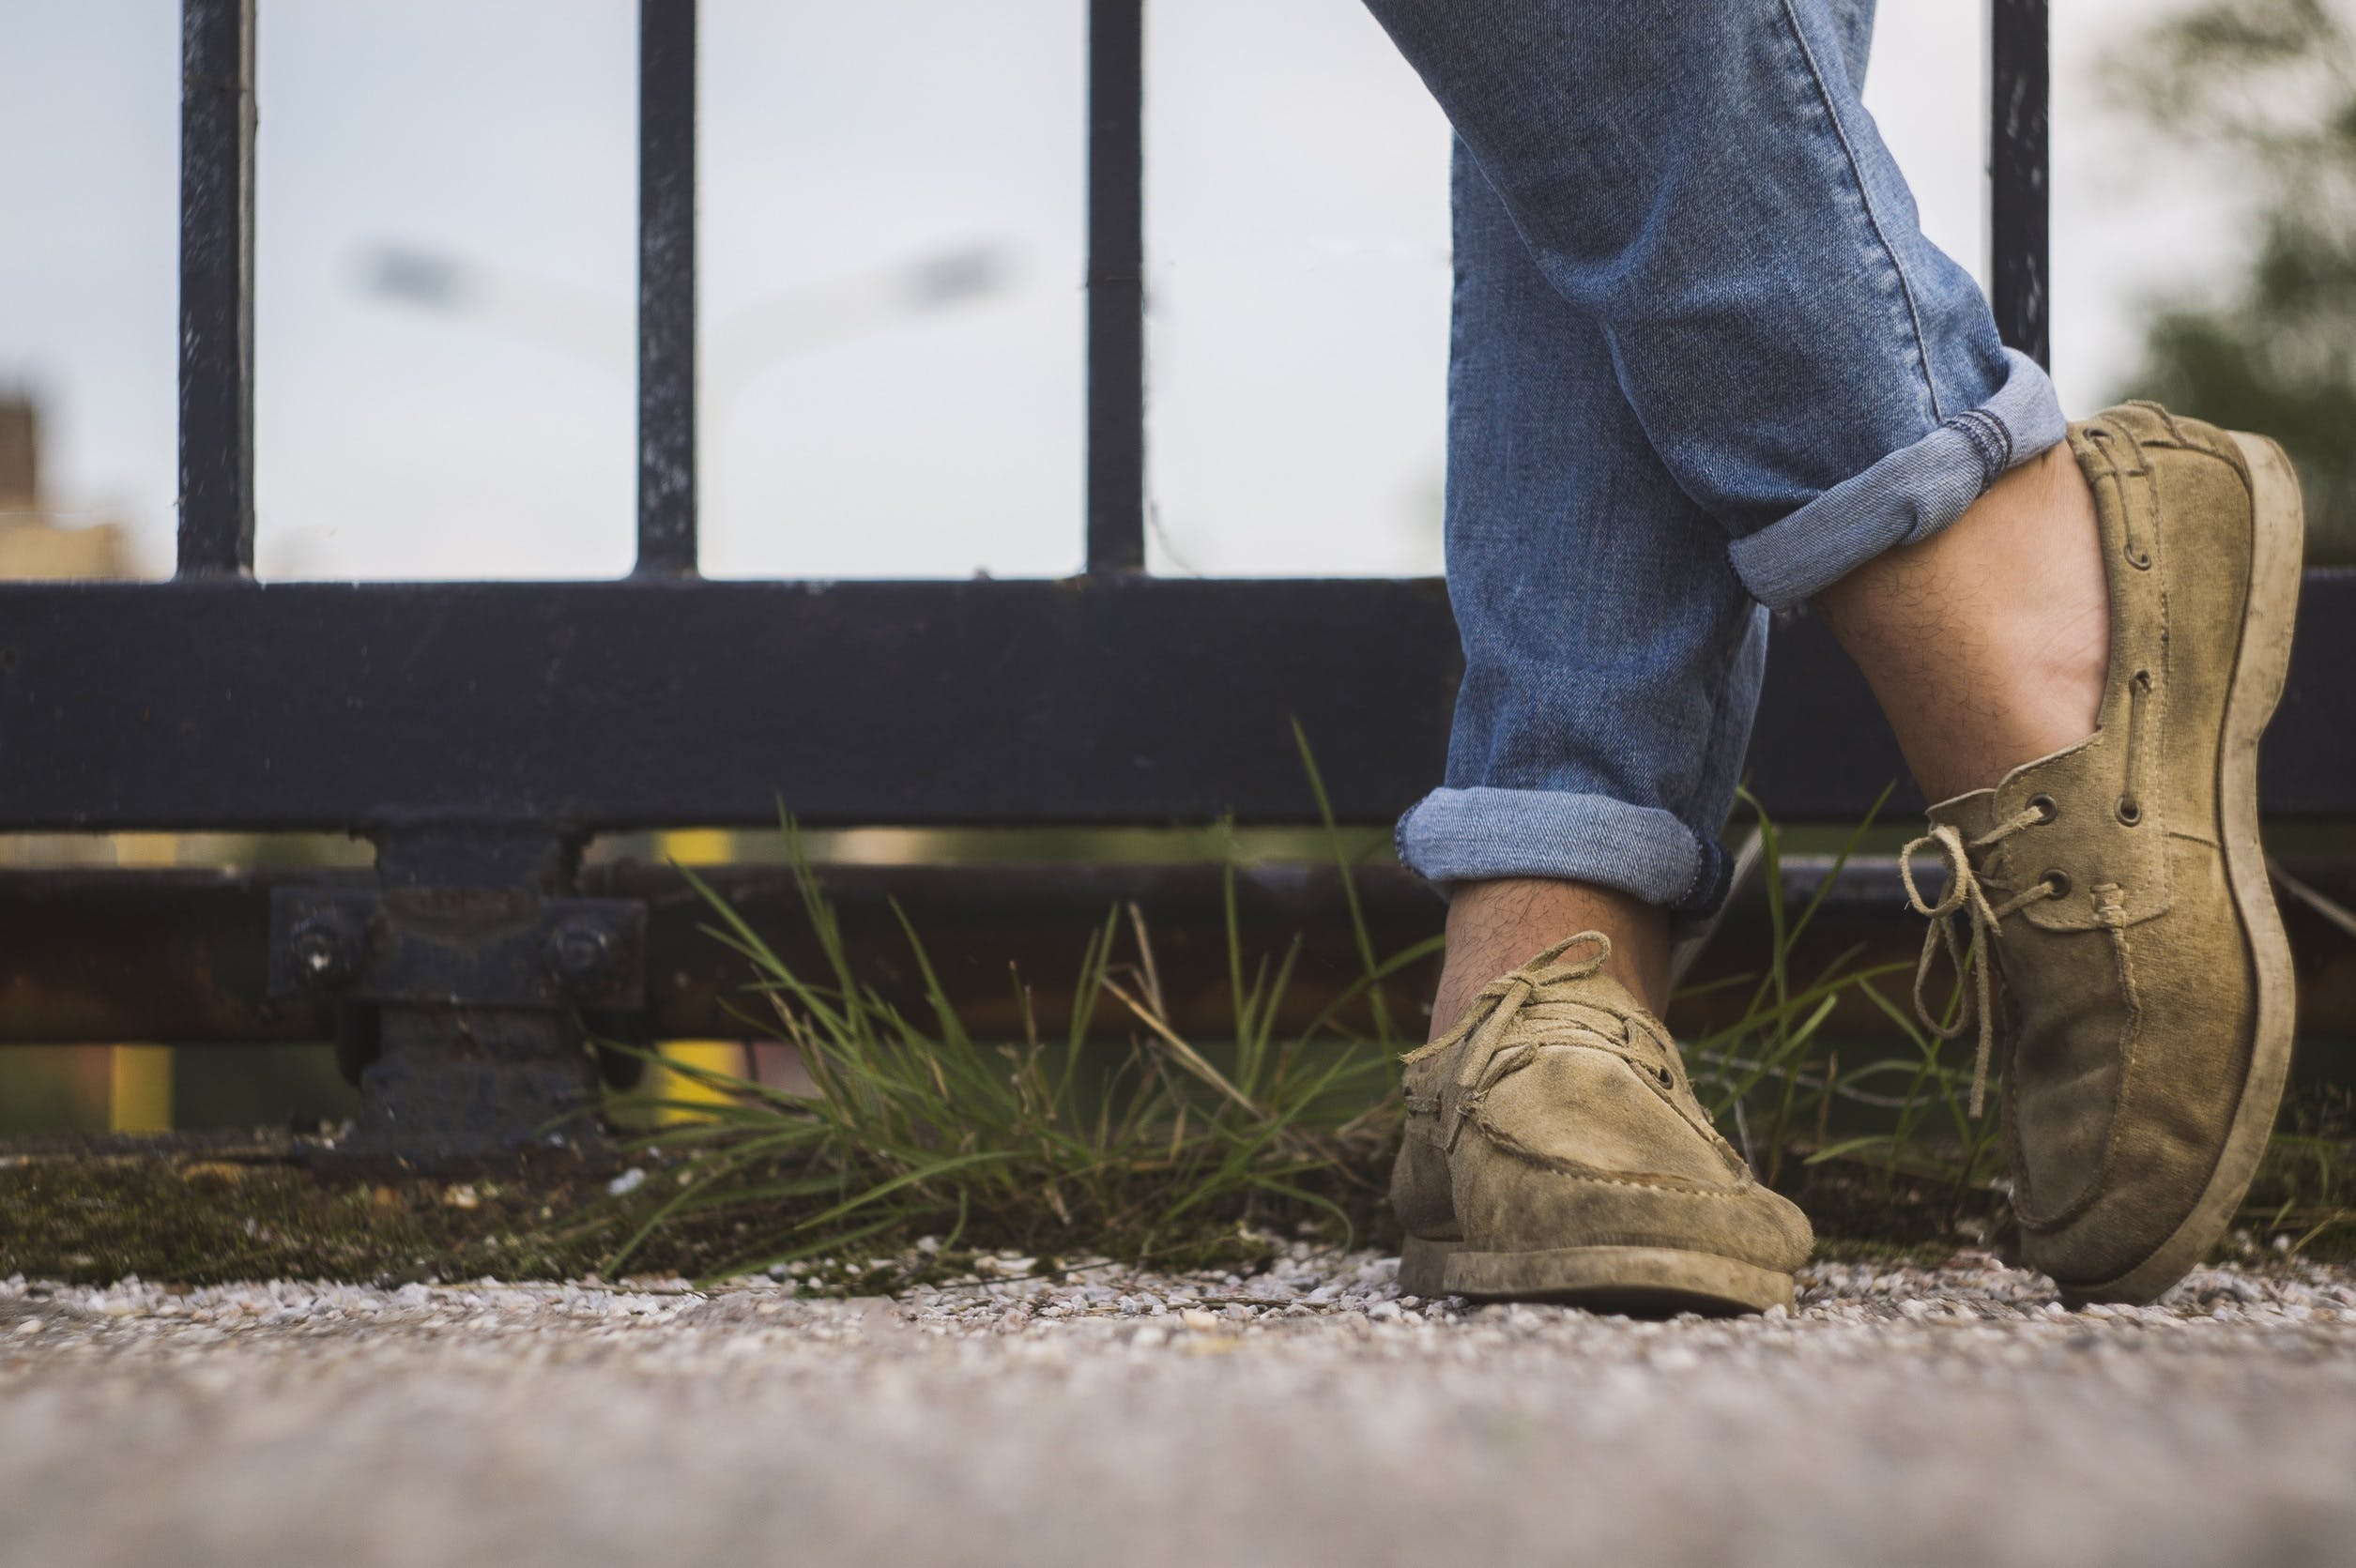 Free stock photo of feet, shoes, standing, ground